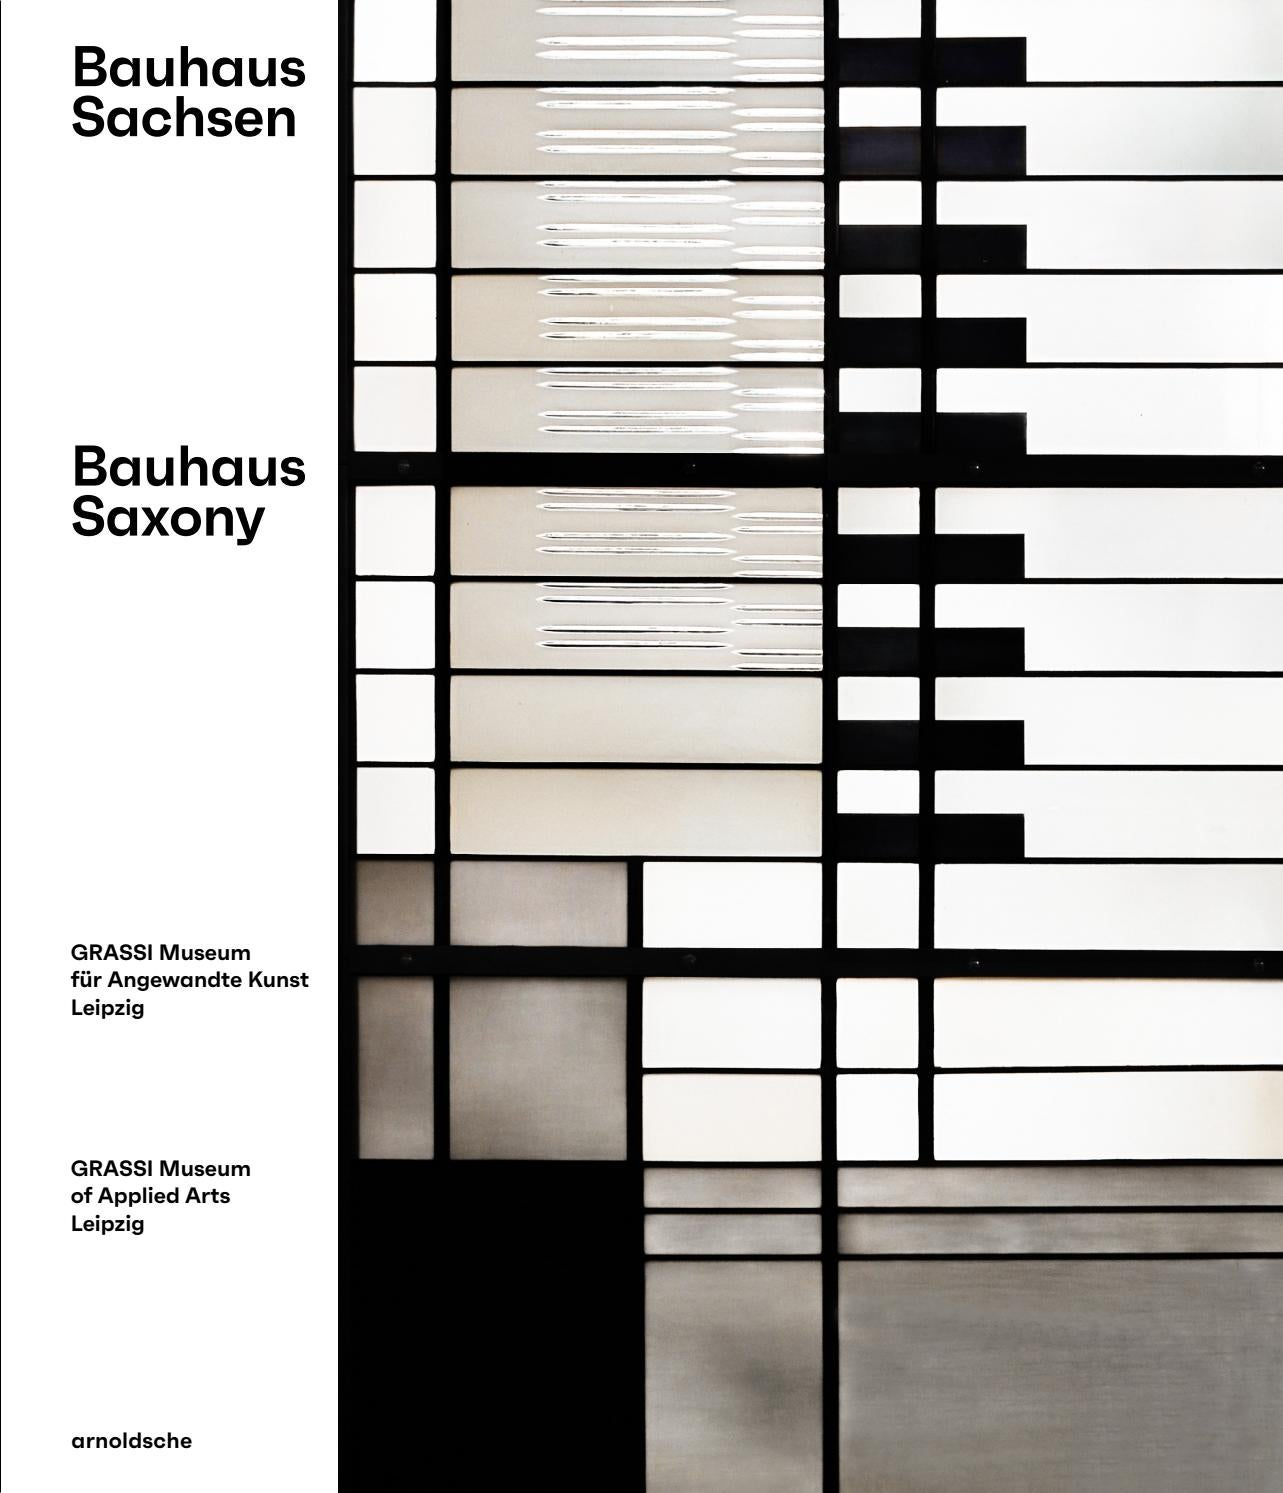 Bauhausstil Zürich Bauhaus Saxony By Acc Art Books Issuu